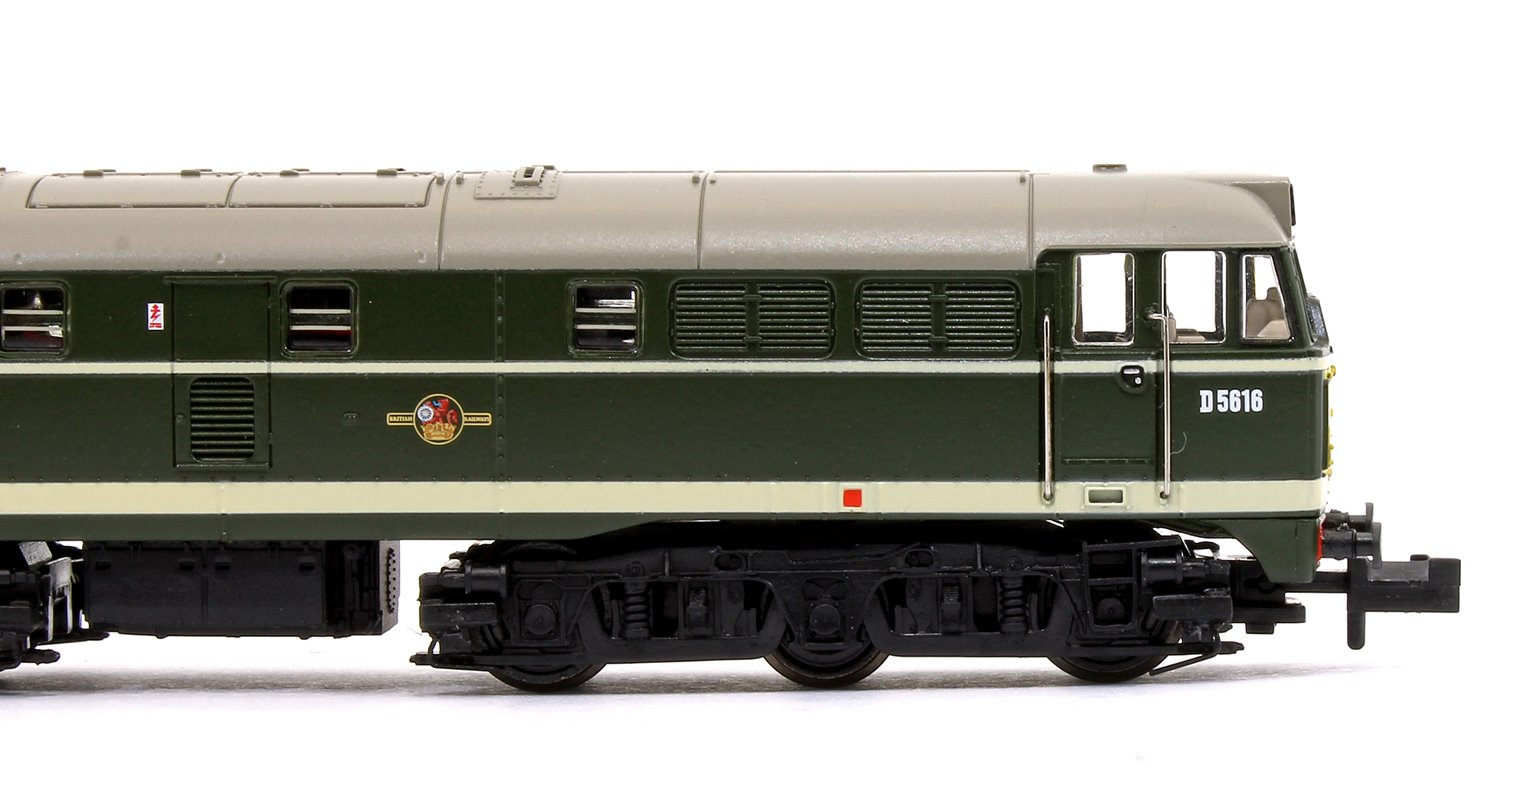 Class 31 No. D5616 in BR Green livery with Small Yellow Panels